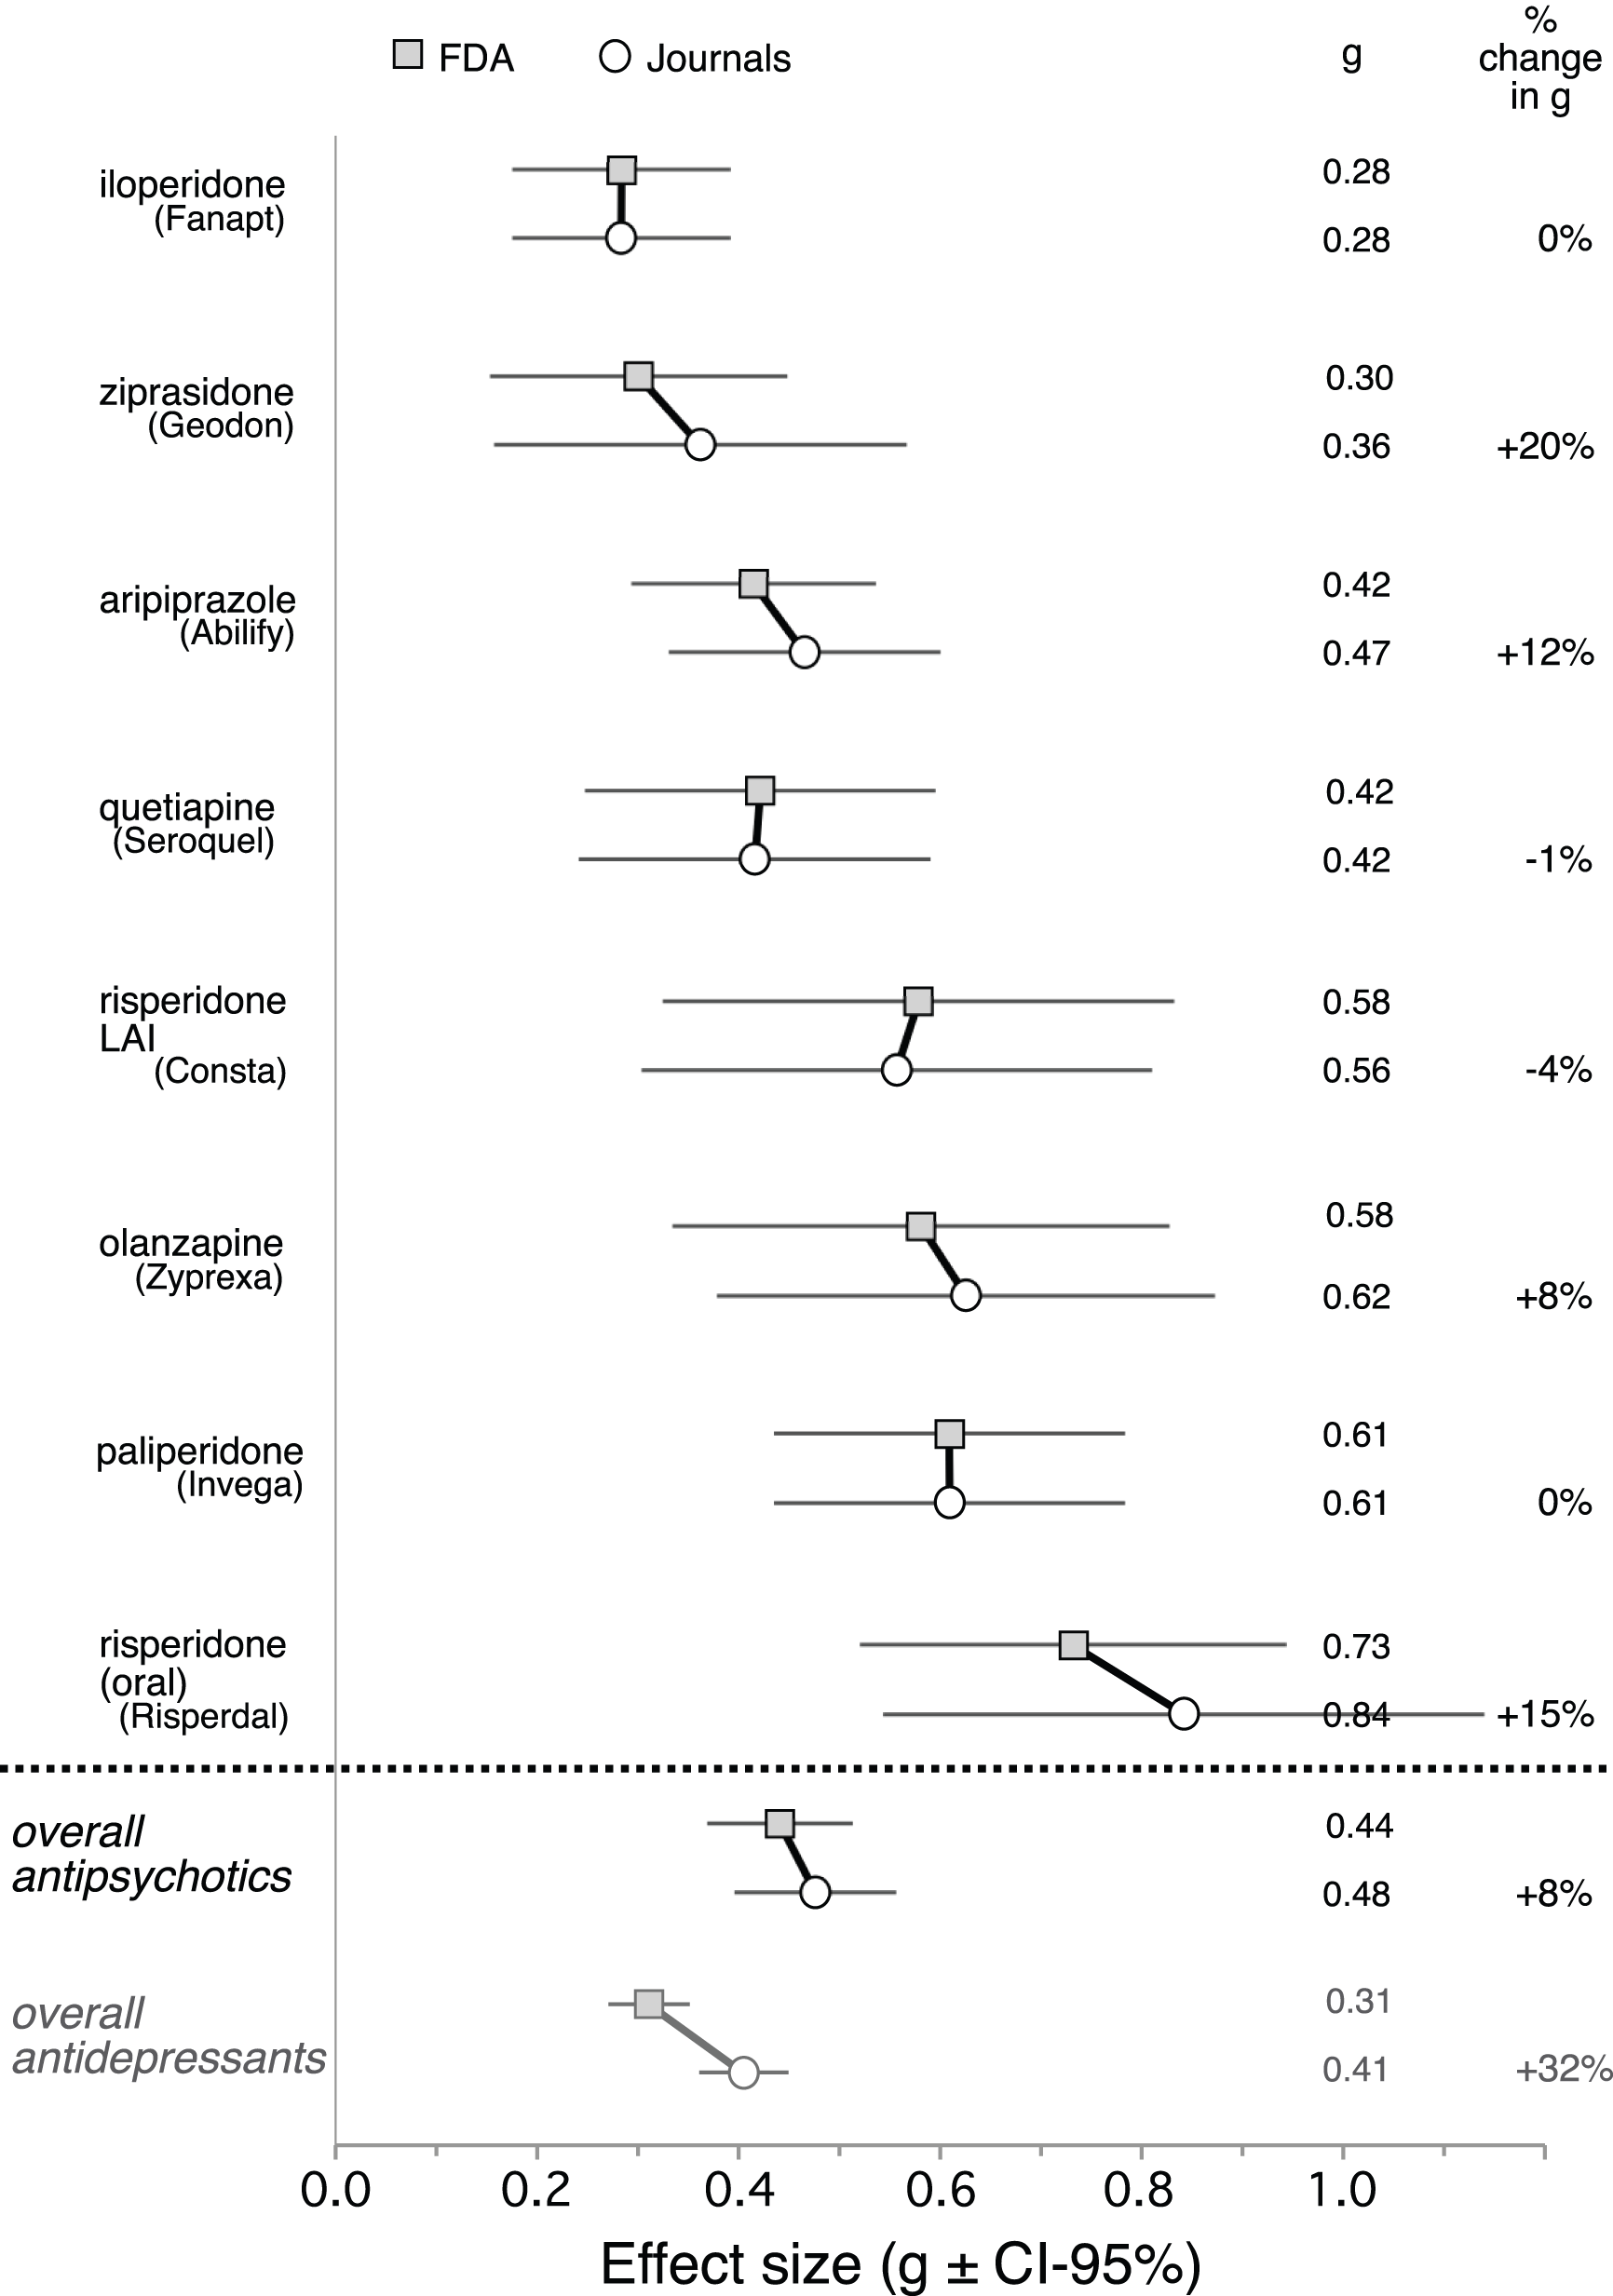 Forest plot of mean weighted effect size (Hedges's <i>g</i>) values by drug and data source.